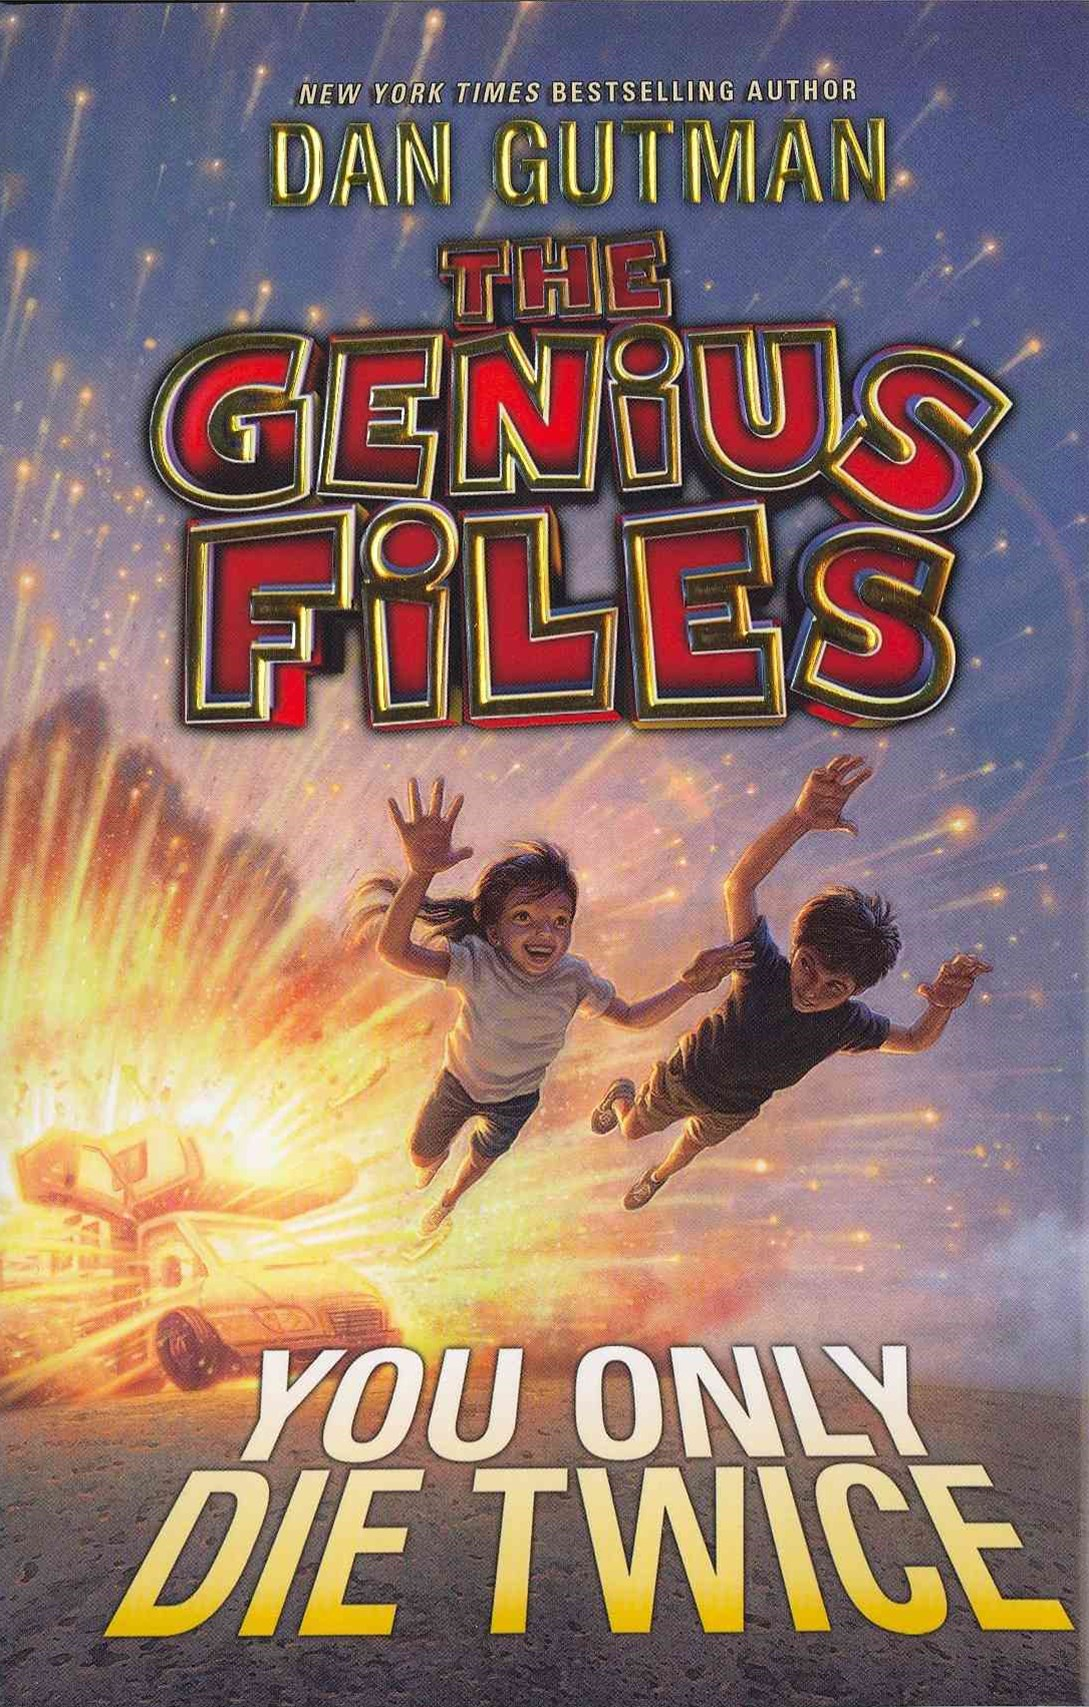 The Genius Files: You Only Die Twice